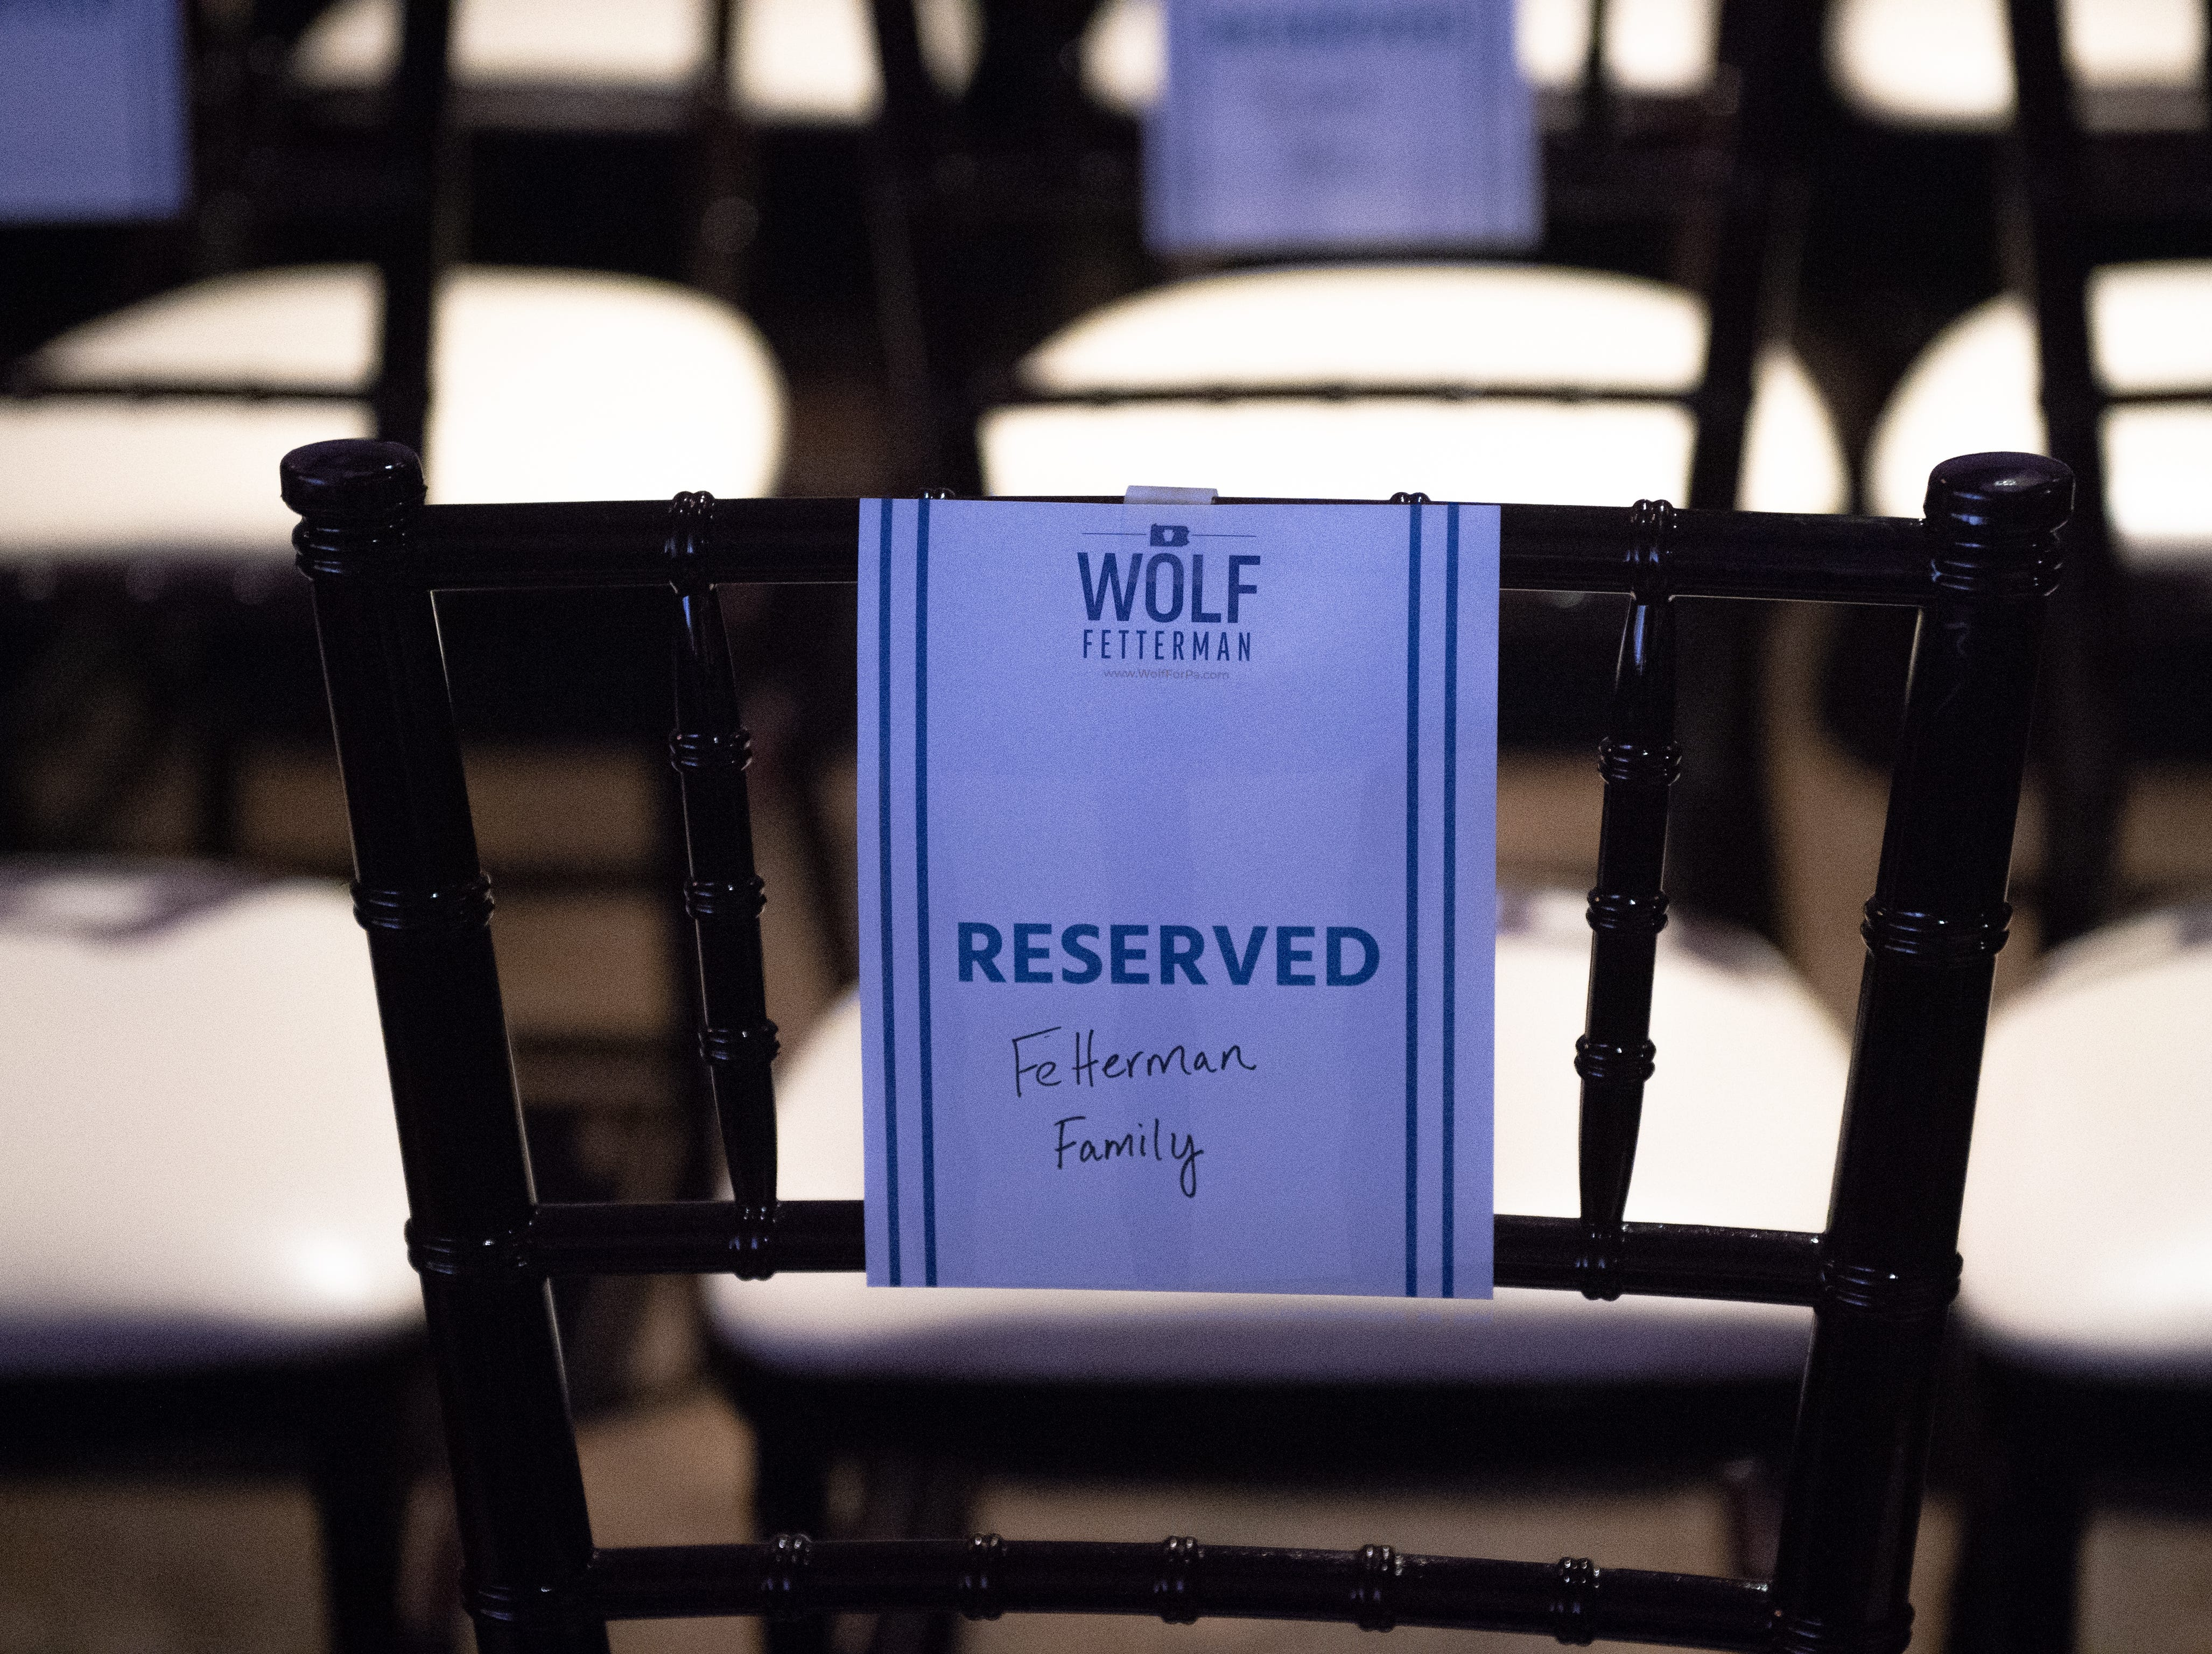 A section of the room is roped off for the families of the candidates during the Governor Wolf and Mayor Fetterman Election Night Party at The Bond, Tuesday, November 6, 2018. Tom Wolf was re-elected as Governor of Pennsylvania after defeating Scott Wagner.